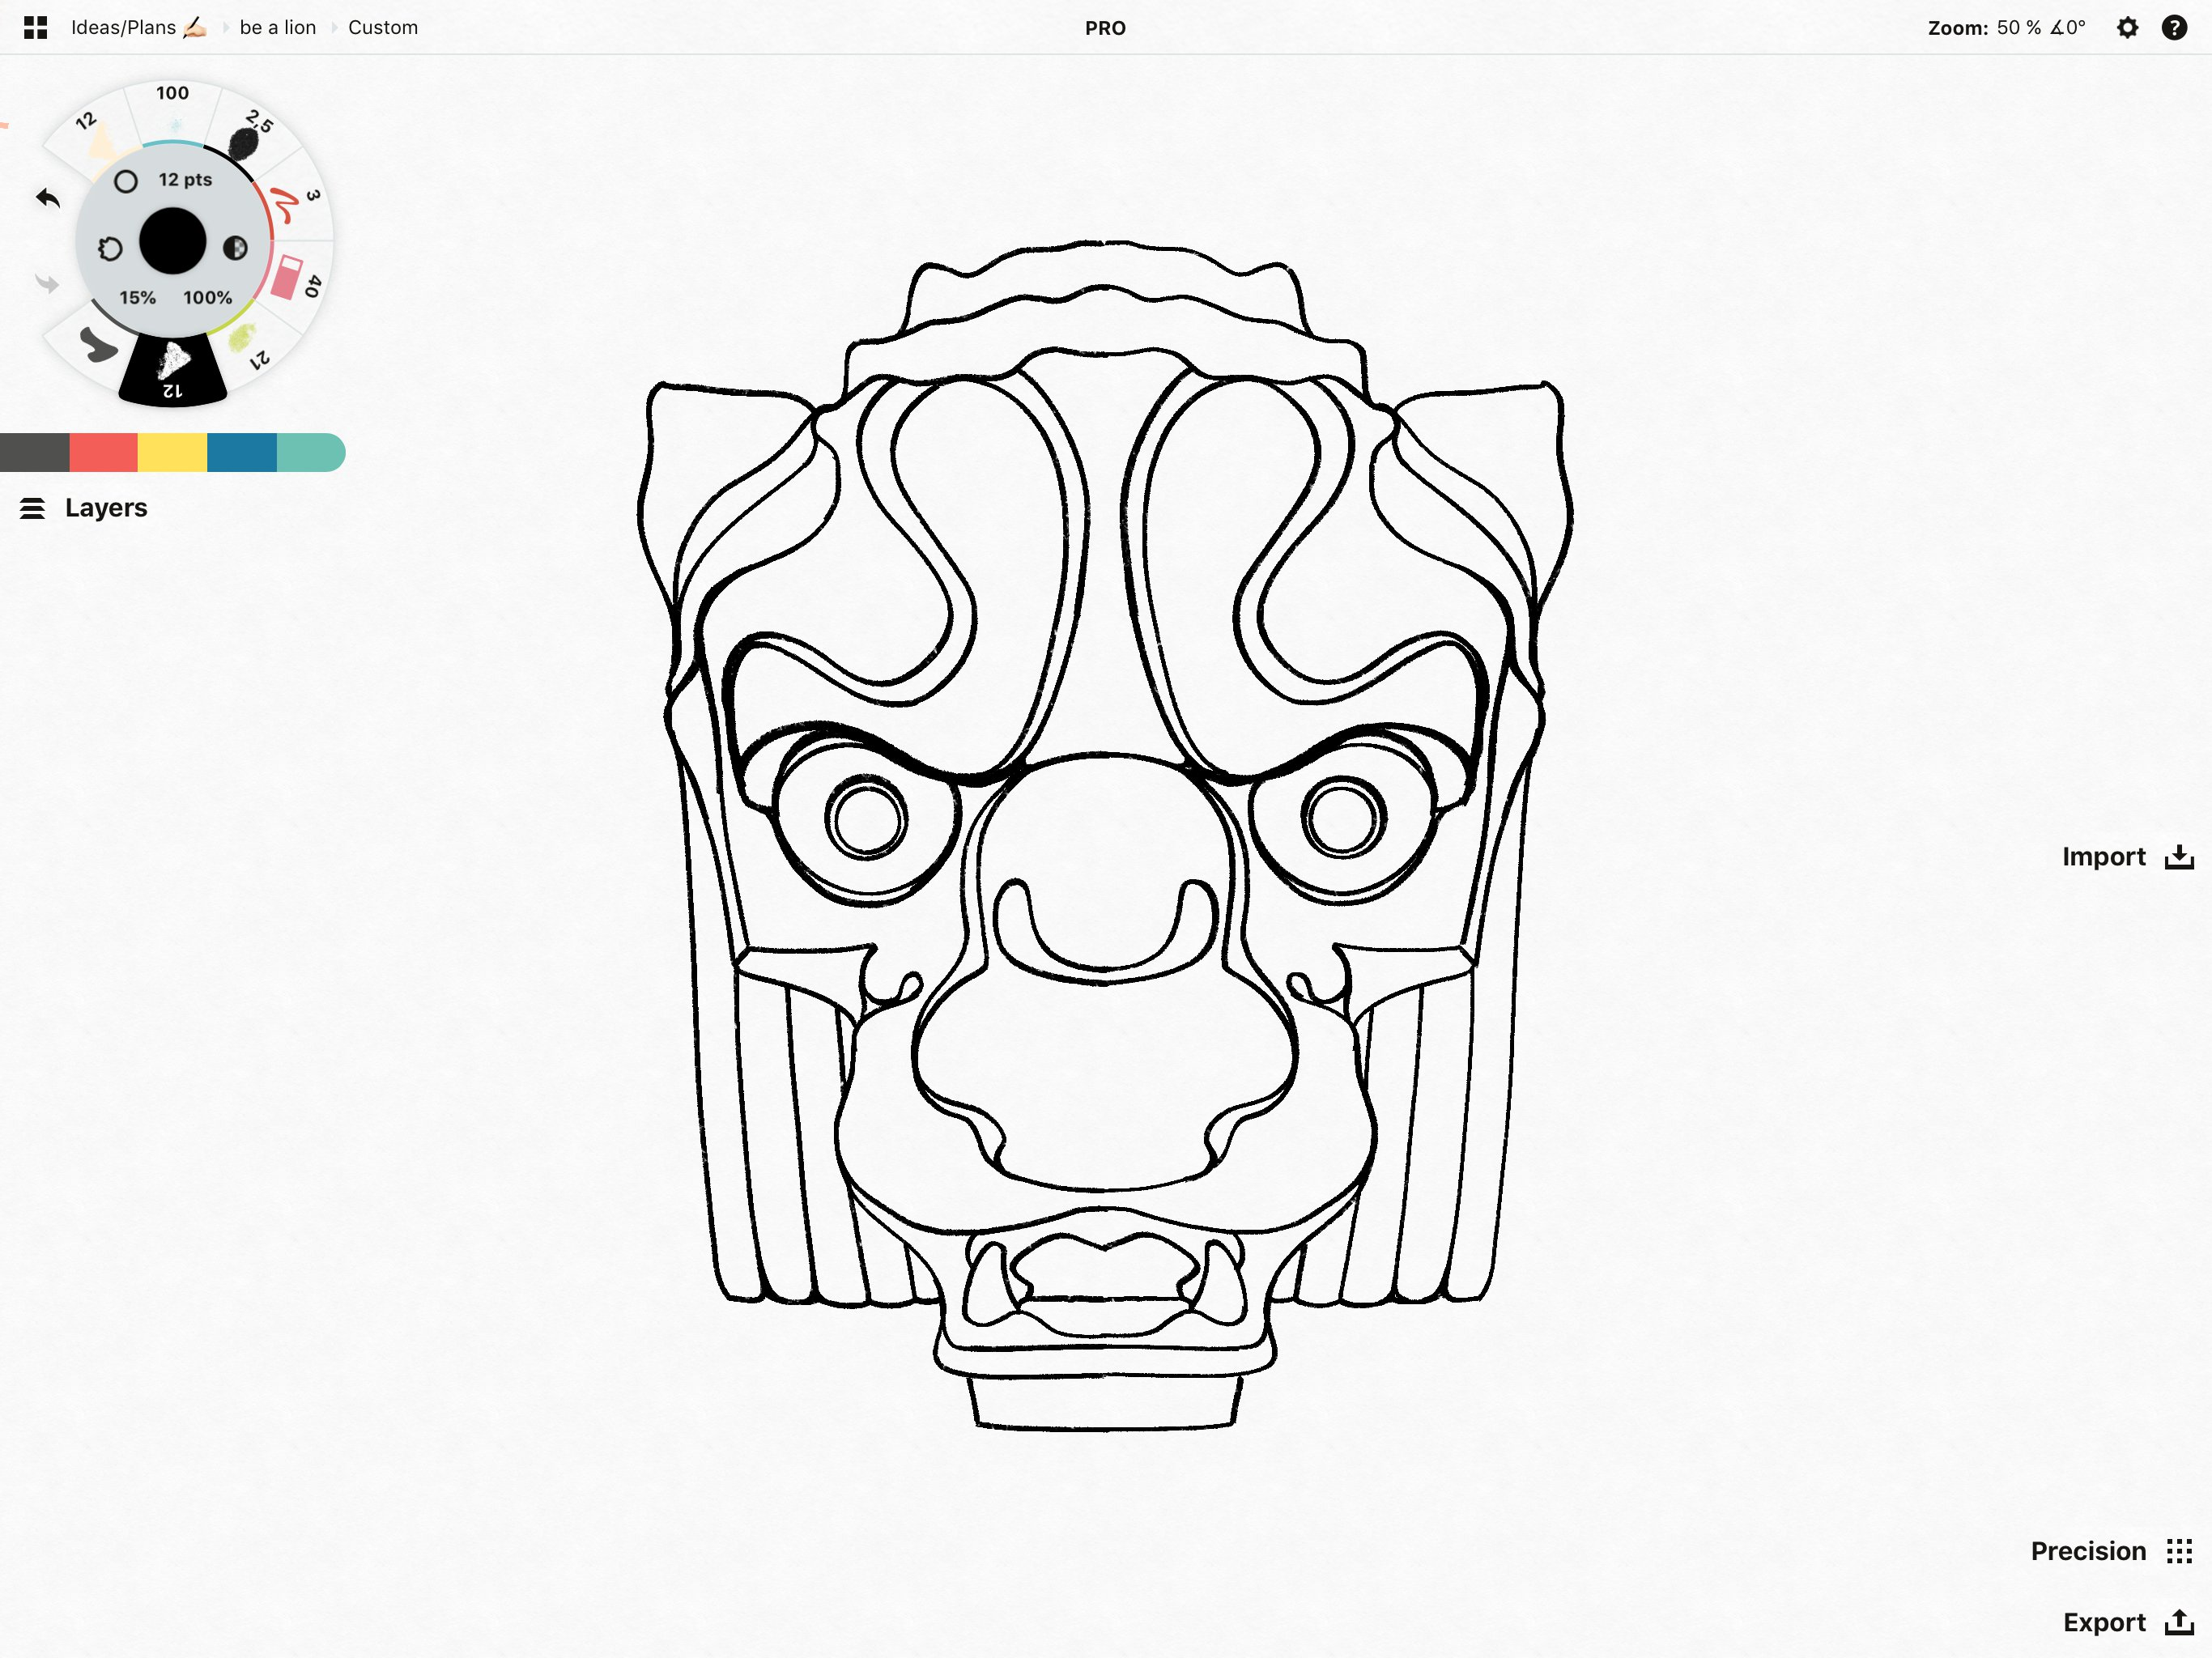 Wood Carving Brushes • Concepts App • Infinite, Flexible